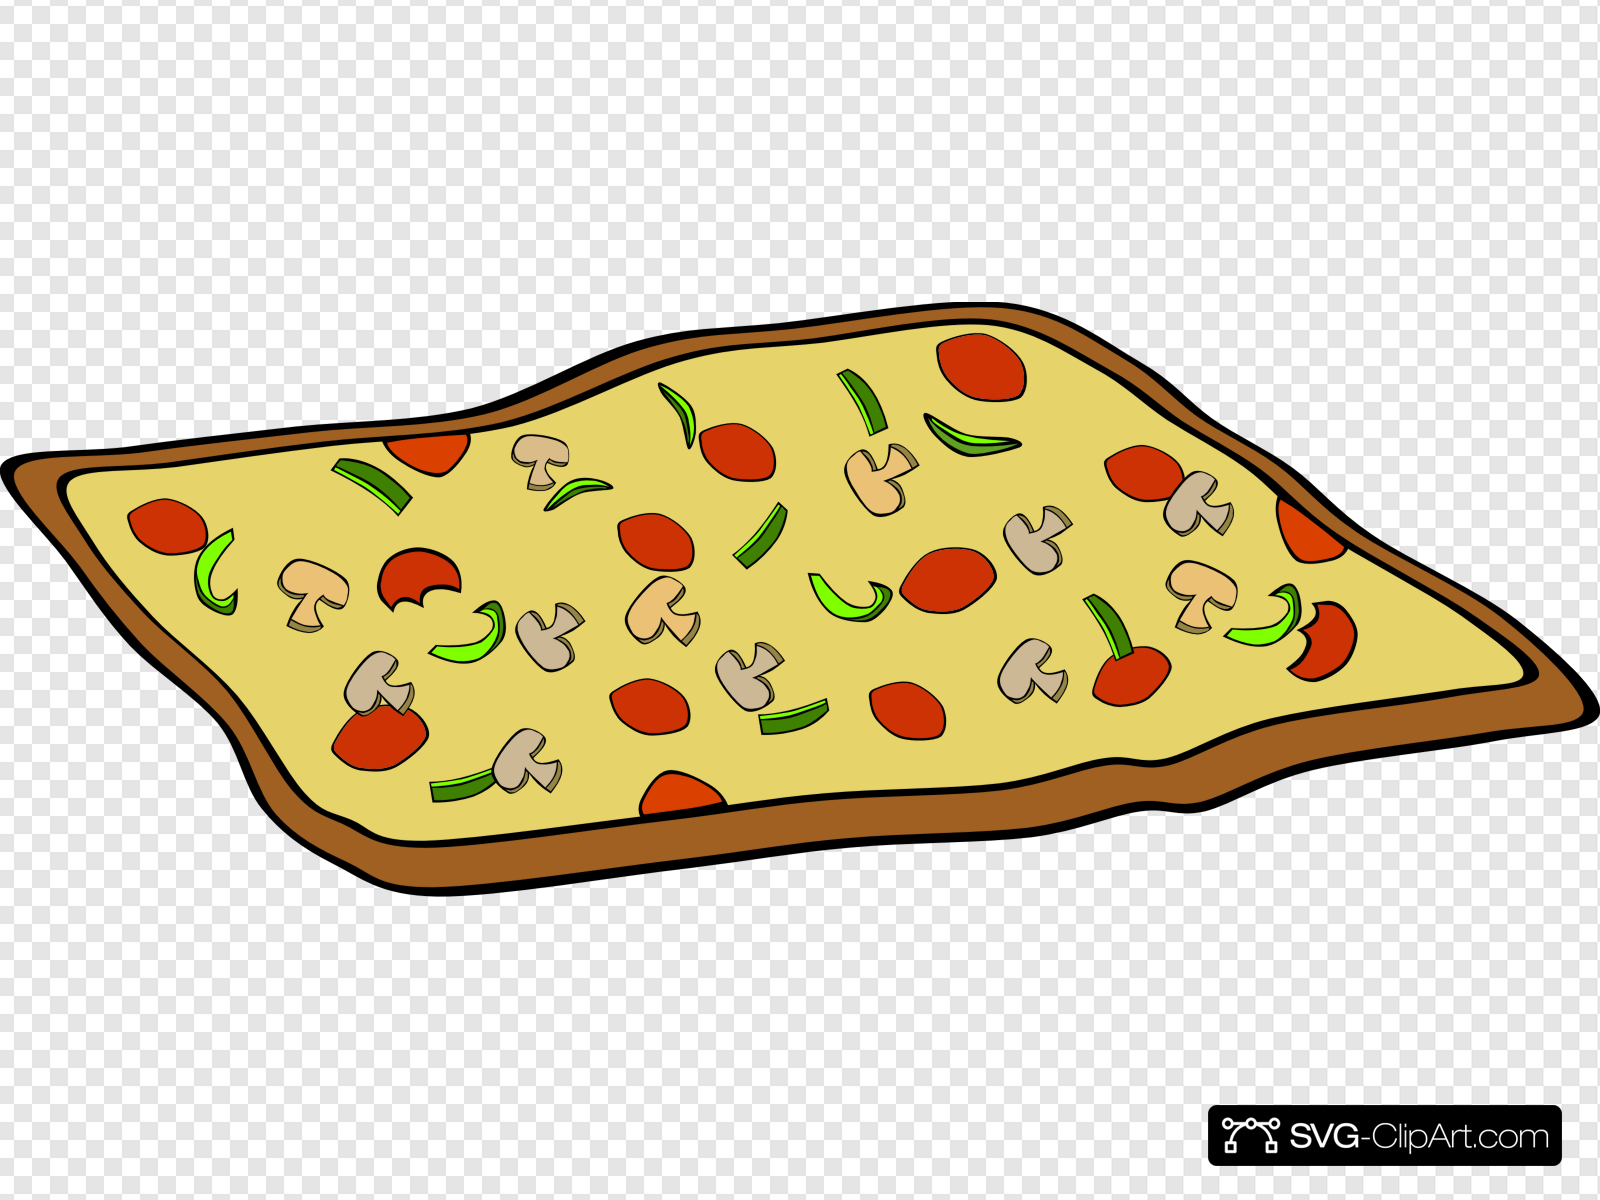 Rectangular Veggie Pizza Clip art, Icon and SVG.